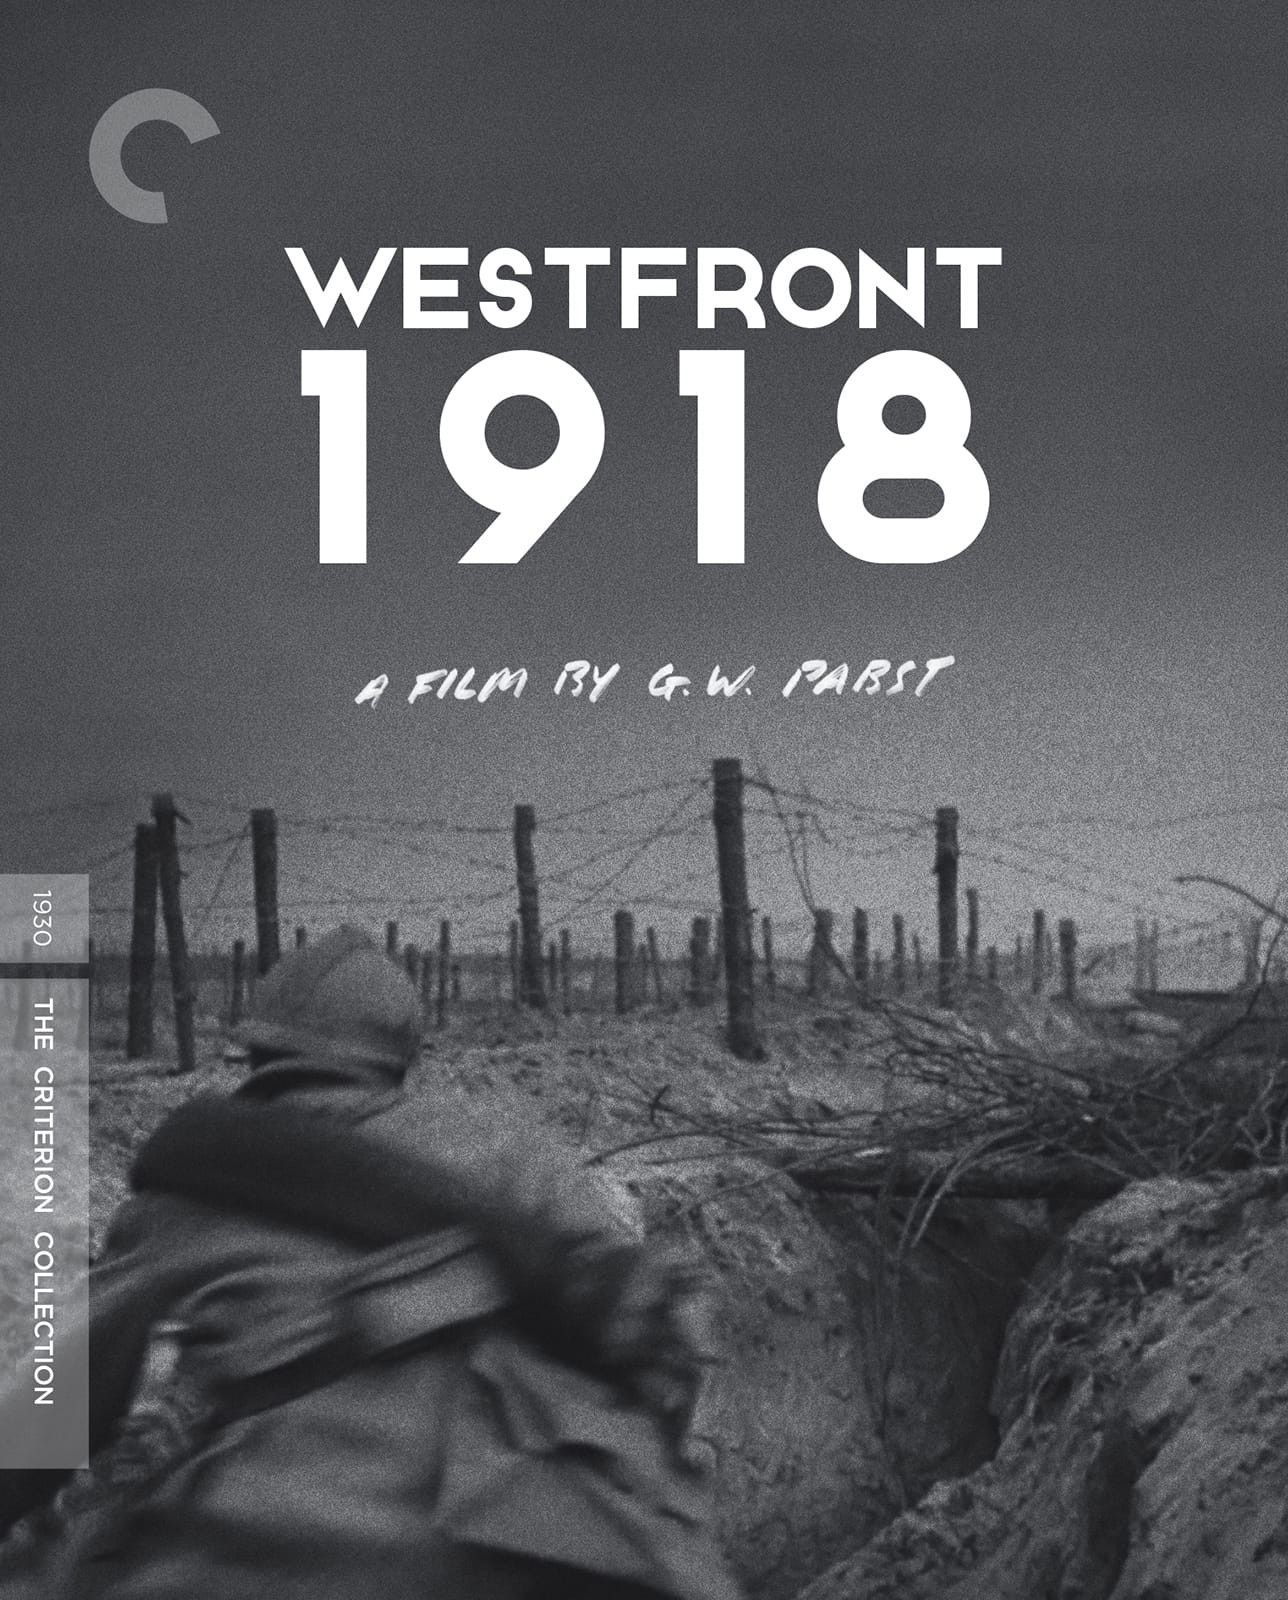 Westfront 1918 (The Criterion Collection)(1930) Blu-ray